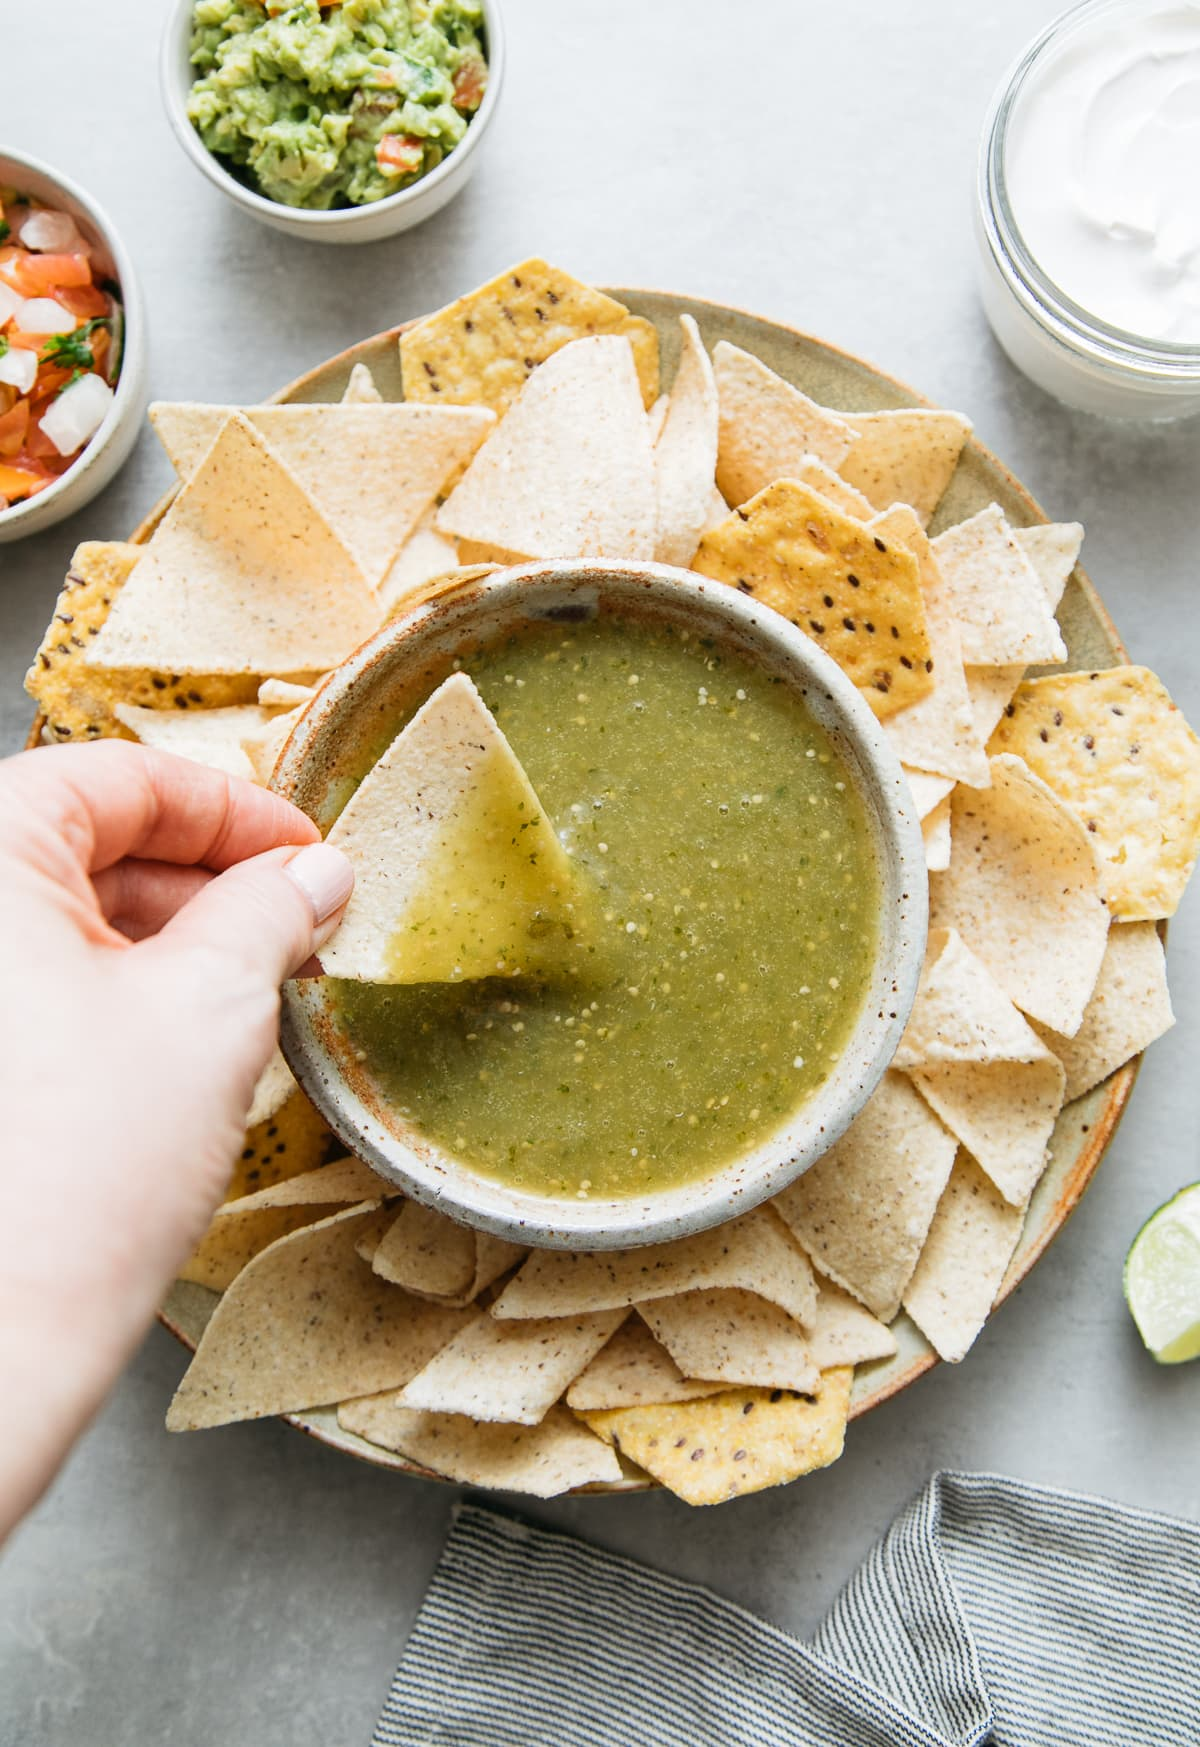 top down view of chip being dipped into bowl filled with tomatillo verde sauce surrounding by tortilla chips and other items.